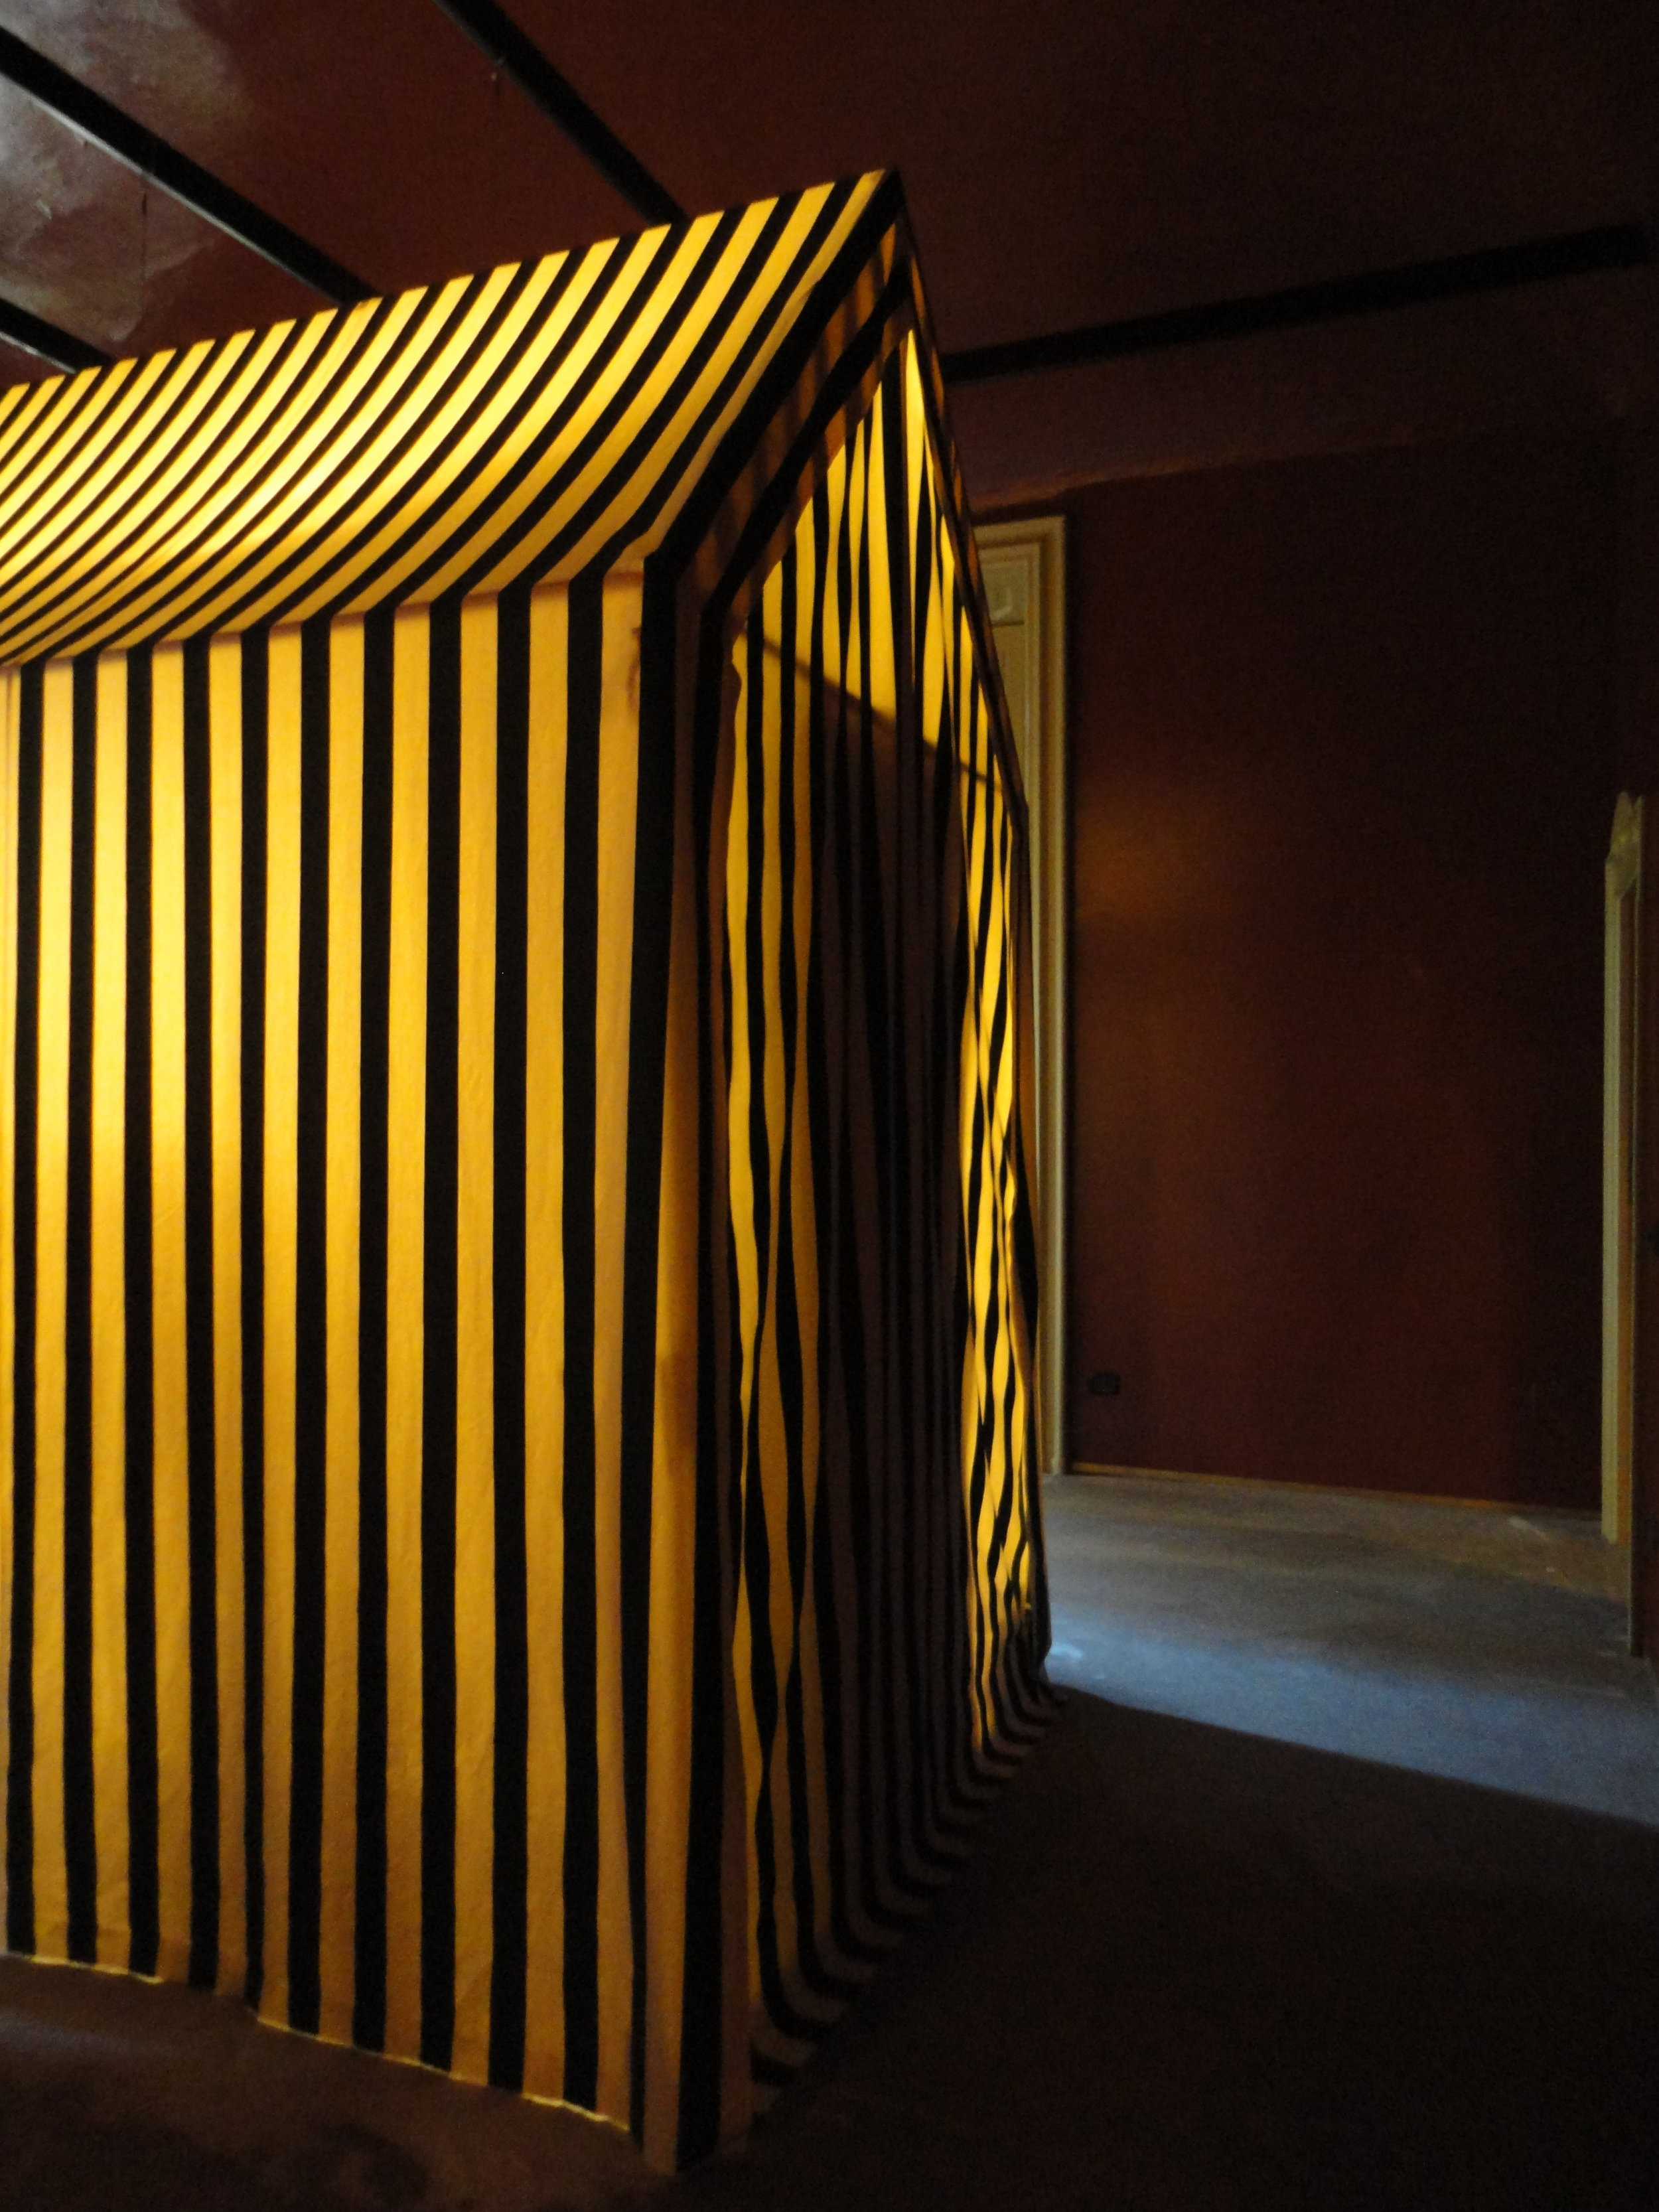 A striped tent illuminated by only candles